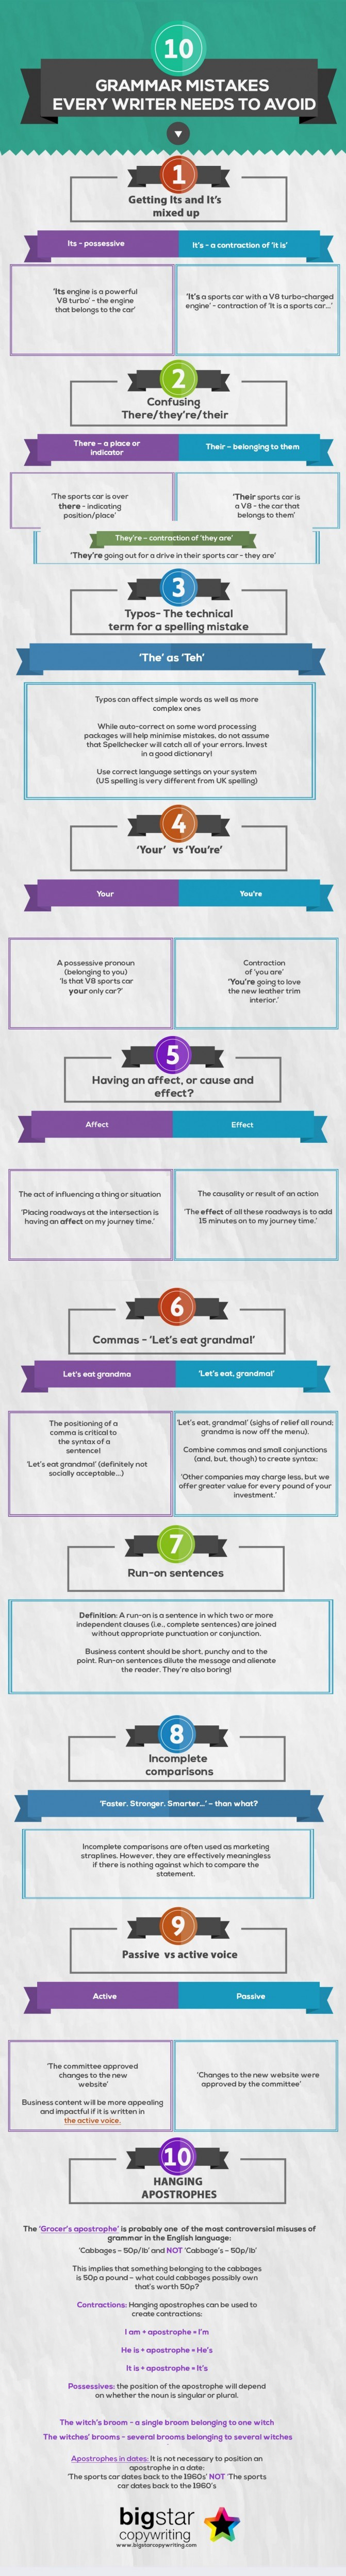 10 Grammar Mistakes Every Writer Needs To Avoid